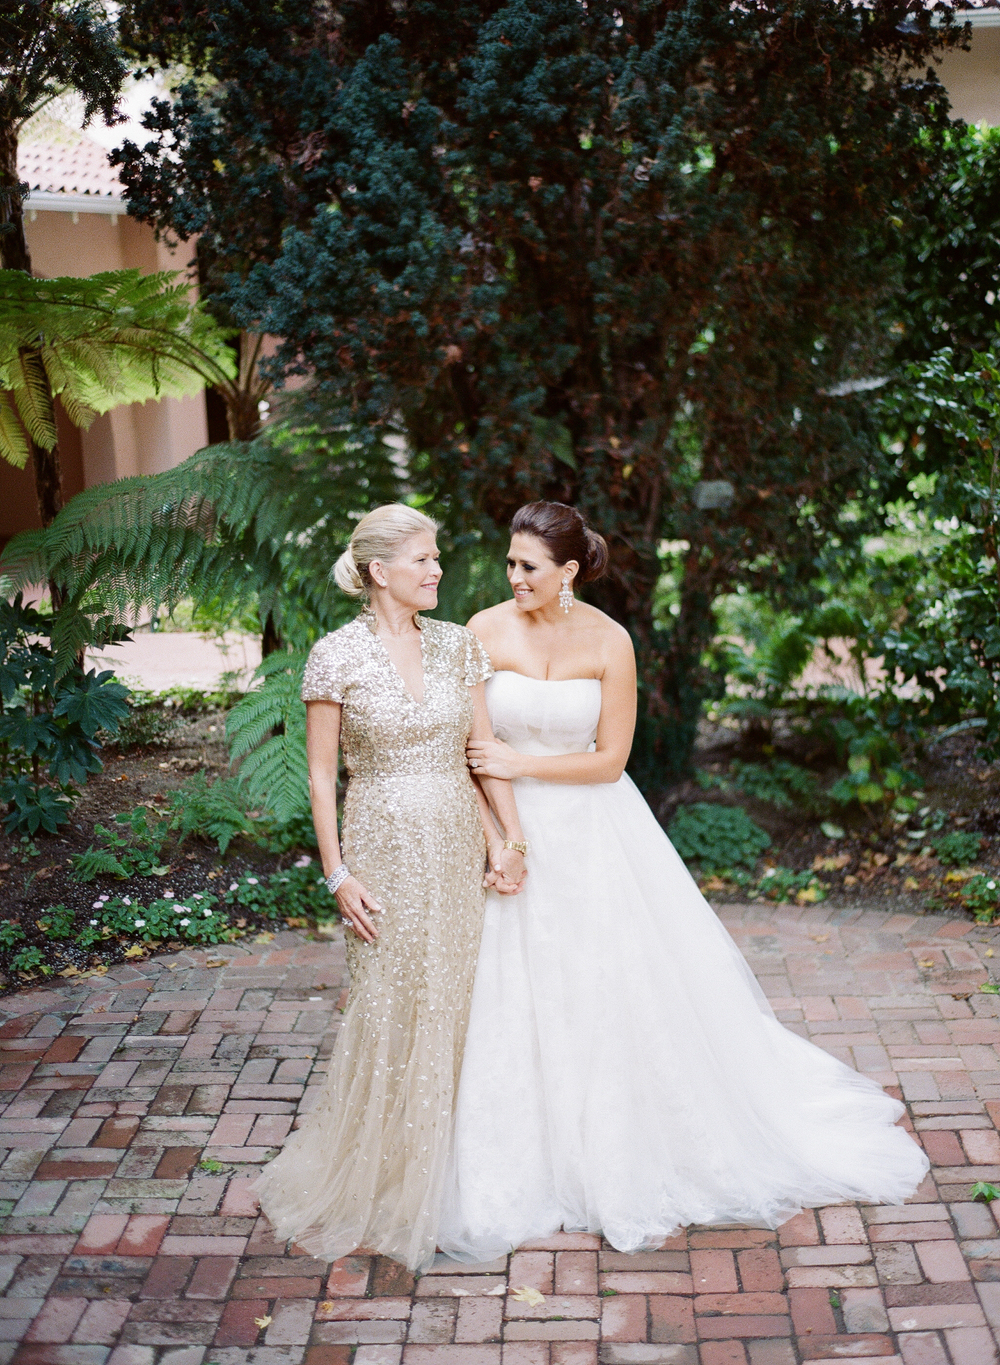 michellebeller.com | Hotel Bel Air Wedding | Michelle Beller Photography